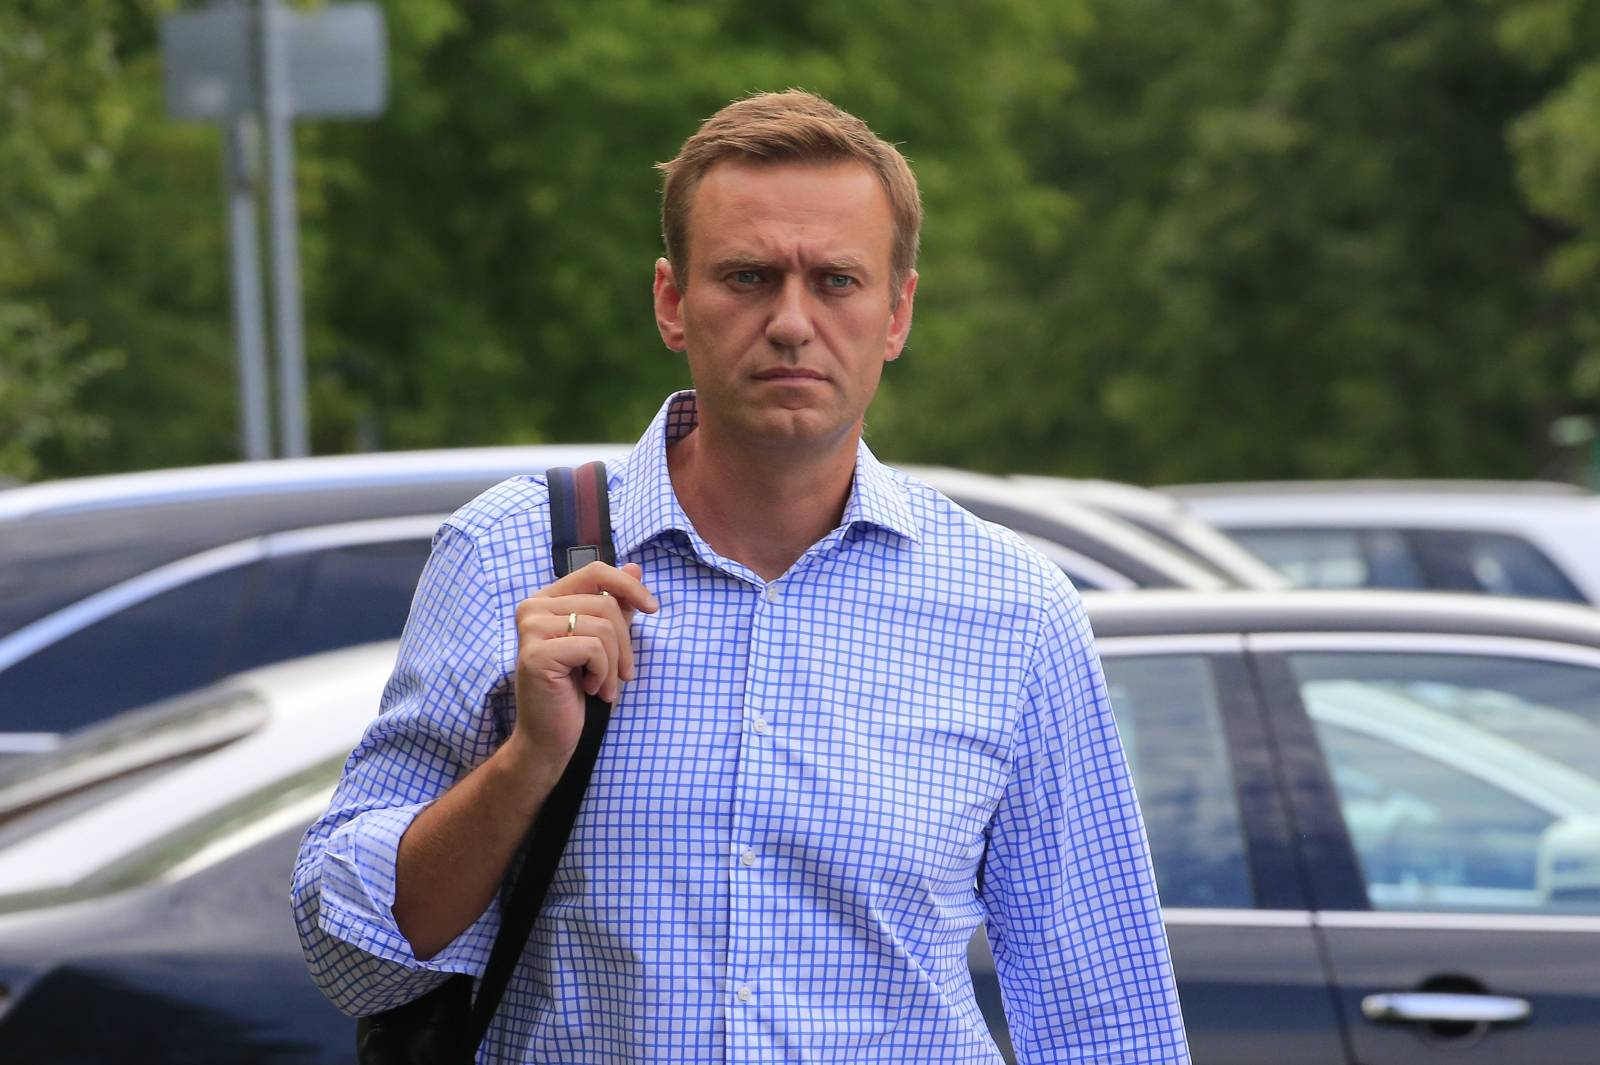 FILE PHOTO: Russian opposition leader Navalny walks before a court hearing in Moscow